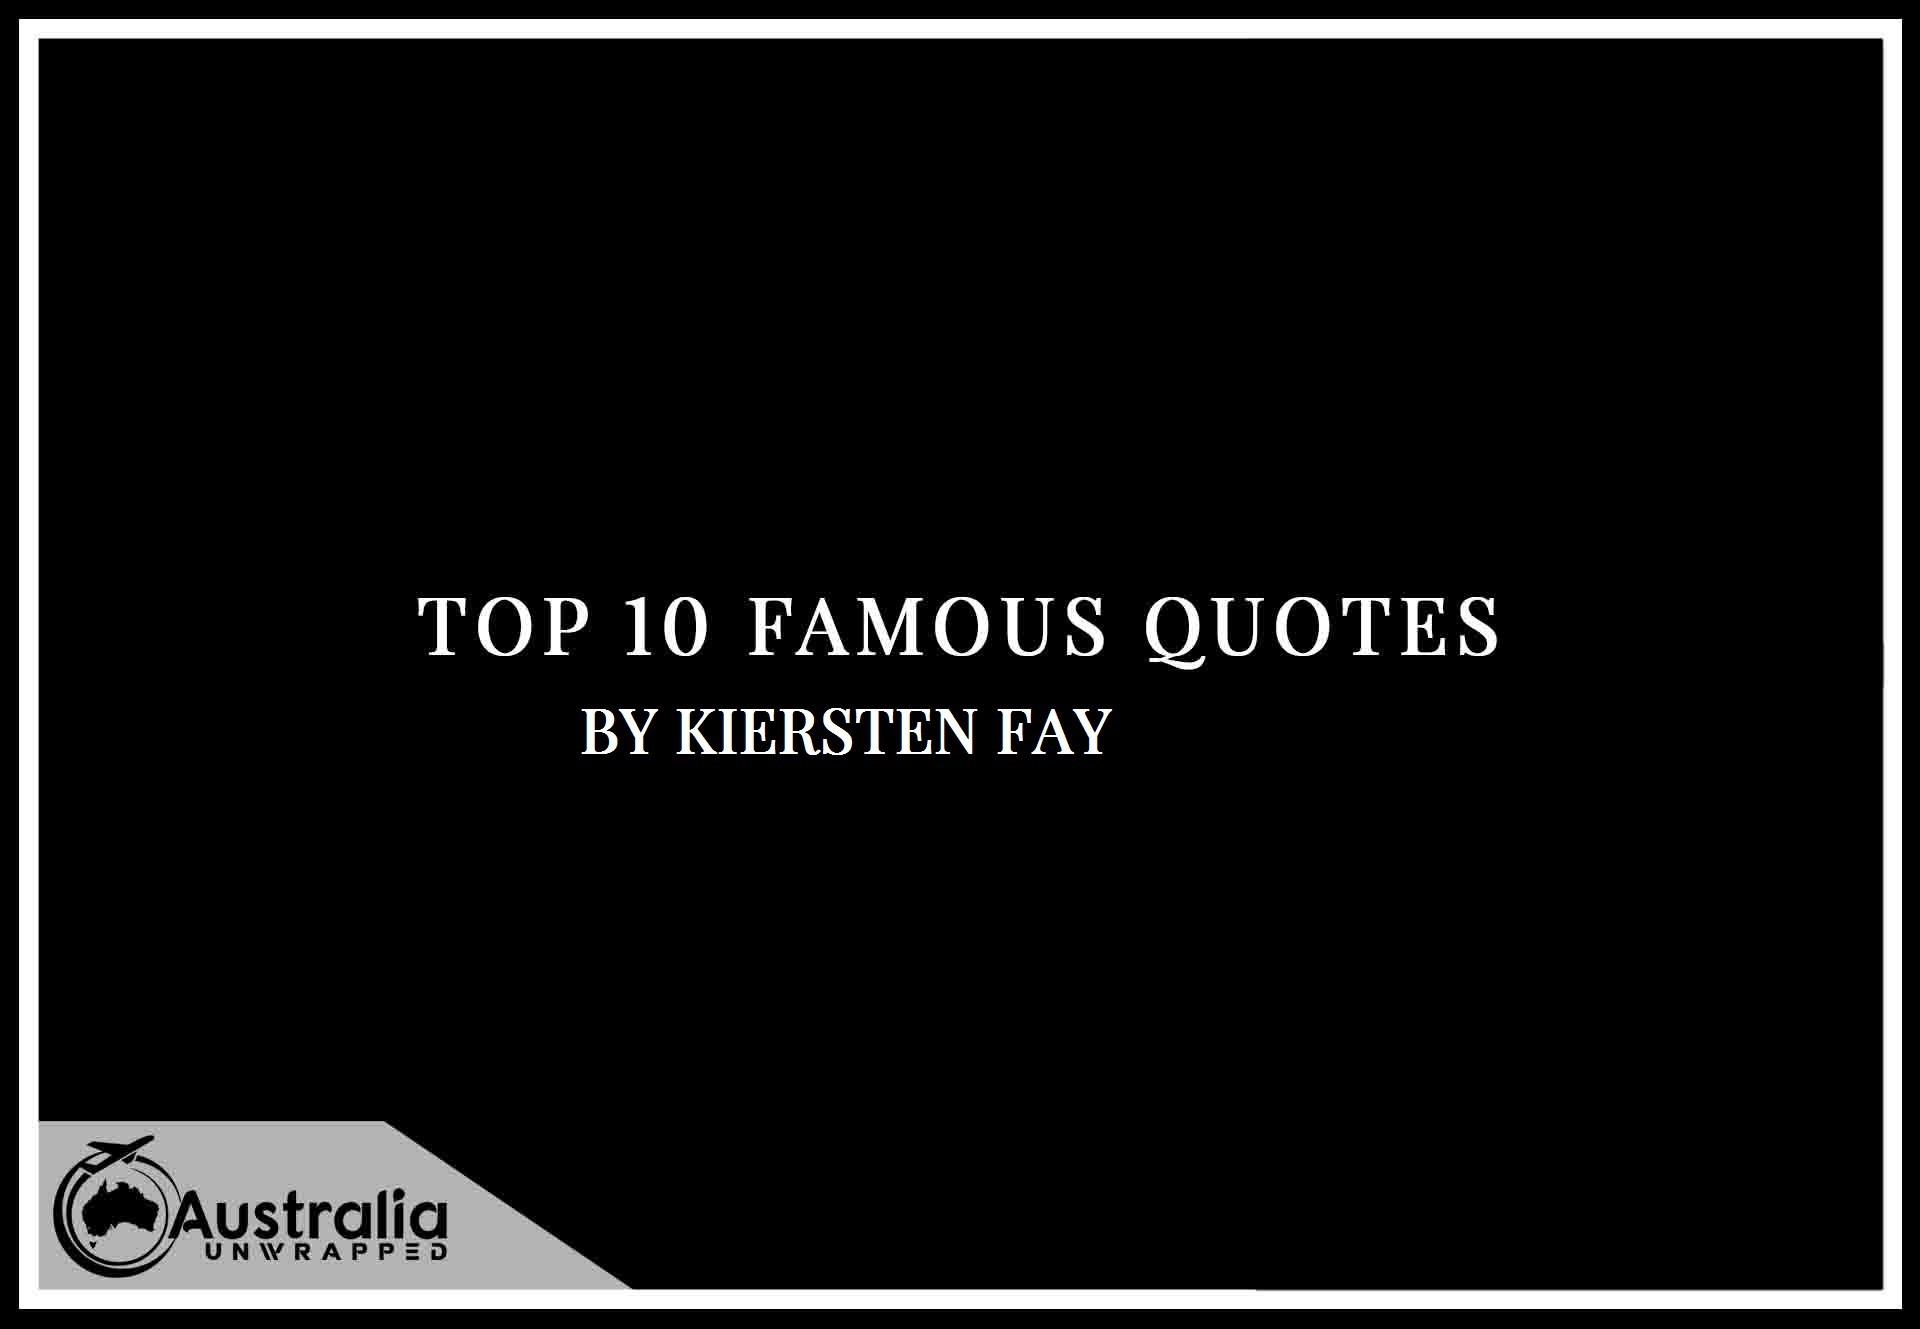 Kiersten Fay's Top 10 Popular and Famous Quotes